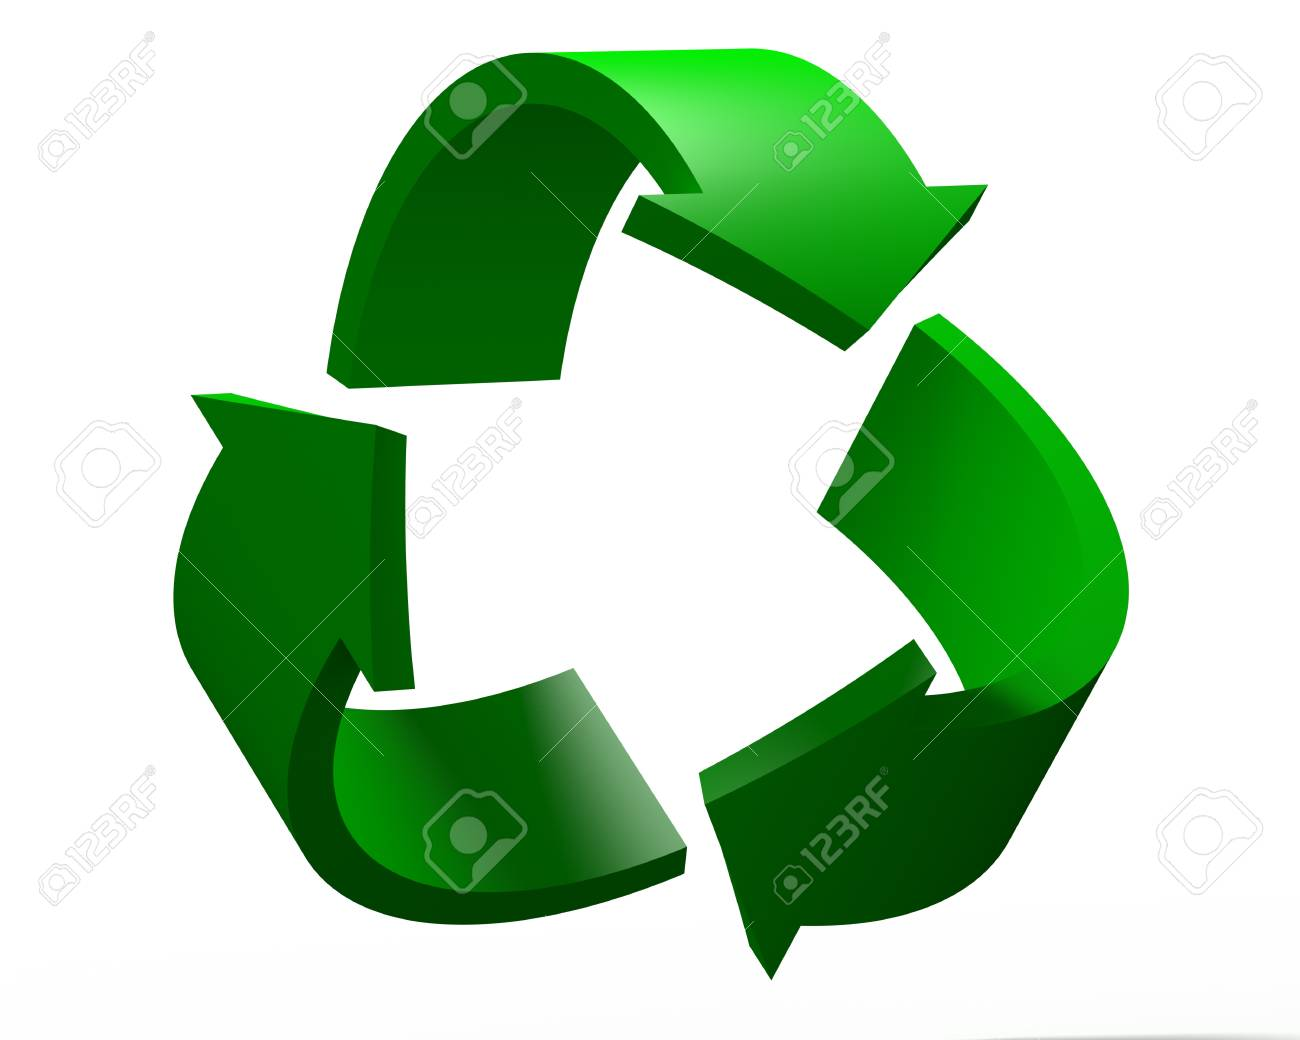 3d render of recycling symbol isolated on the white background 3d render of recycling symbol isolated on the white background stock photo 18640187 biocorpaavc Gallery